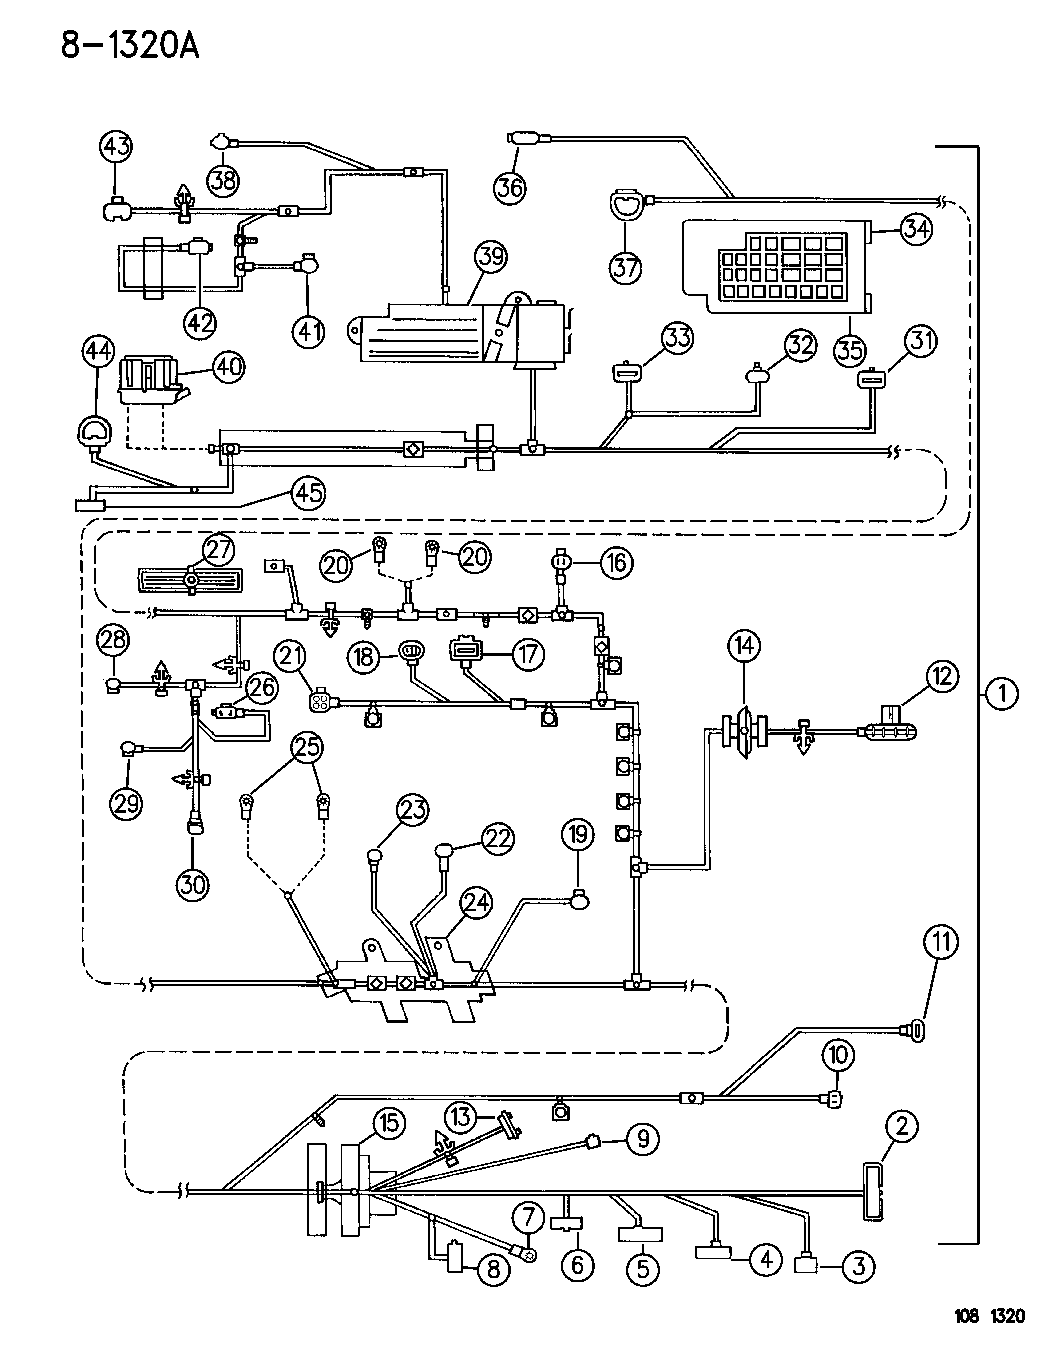 1996 dodge stratus wiring diagram wiring library1996 dodge stratus wiring headlamp to dash